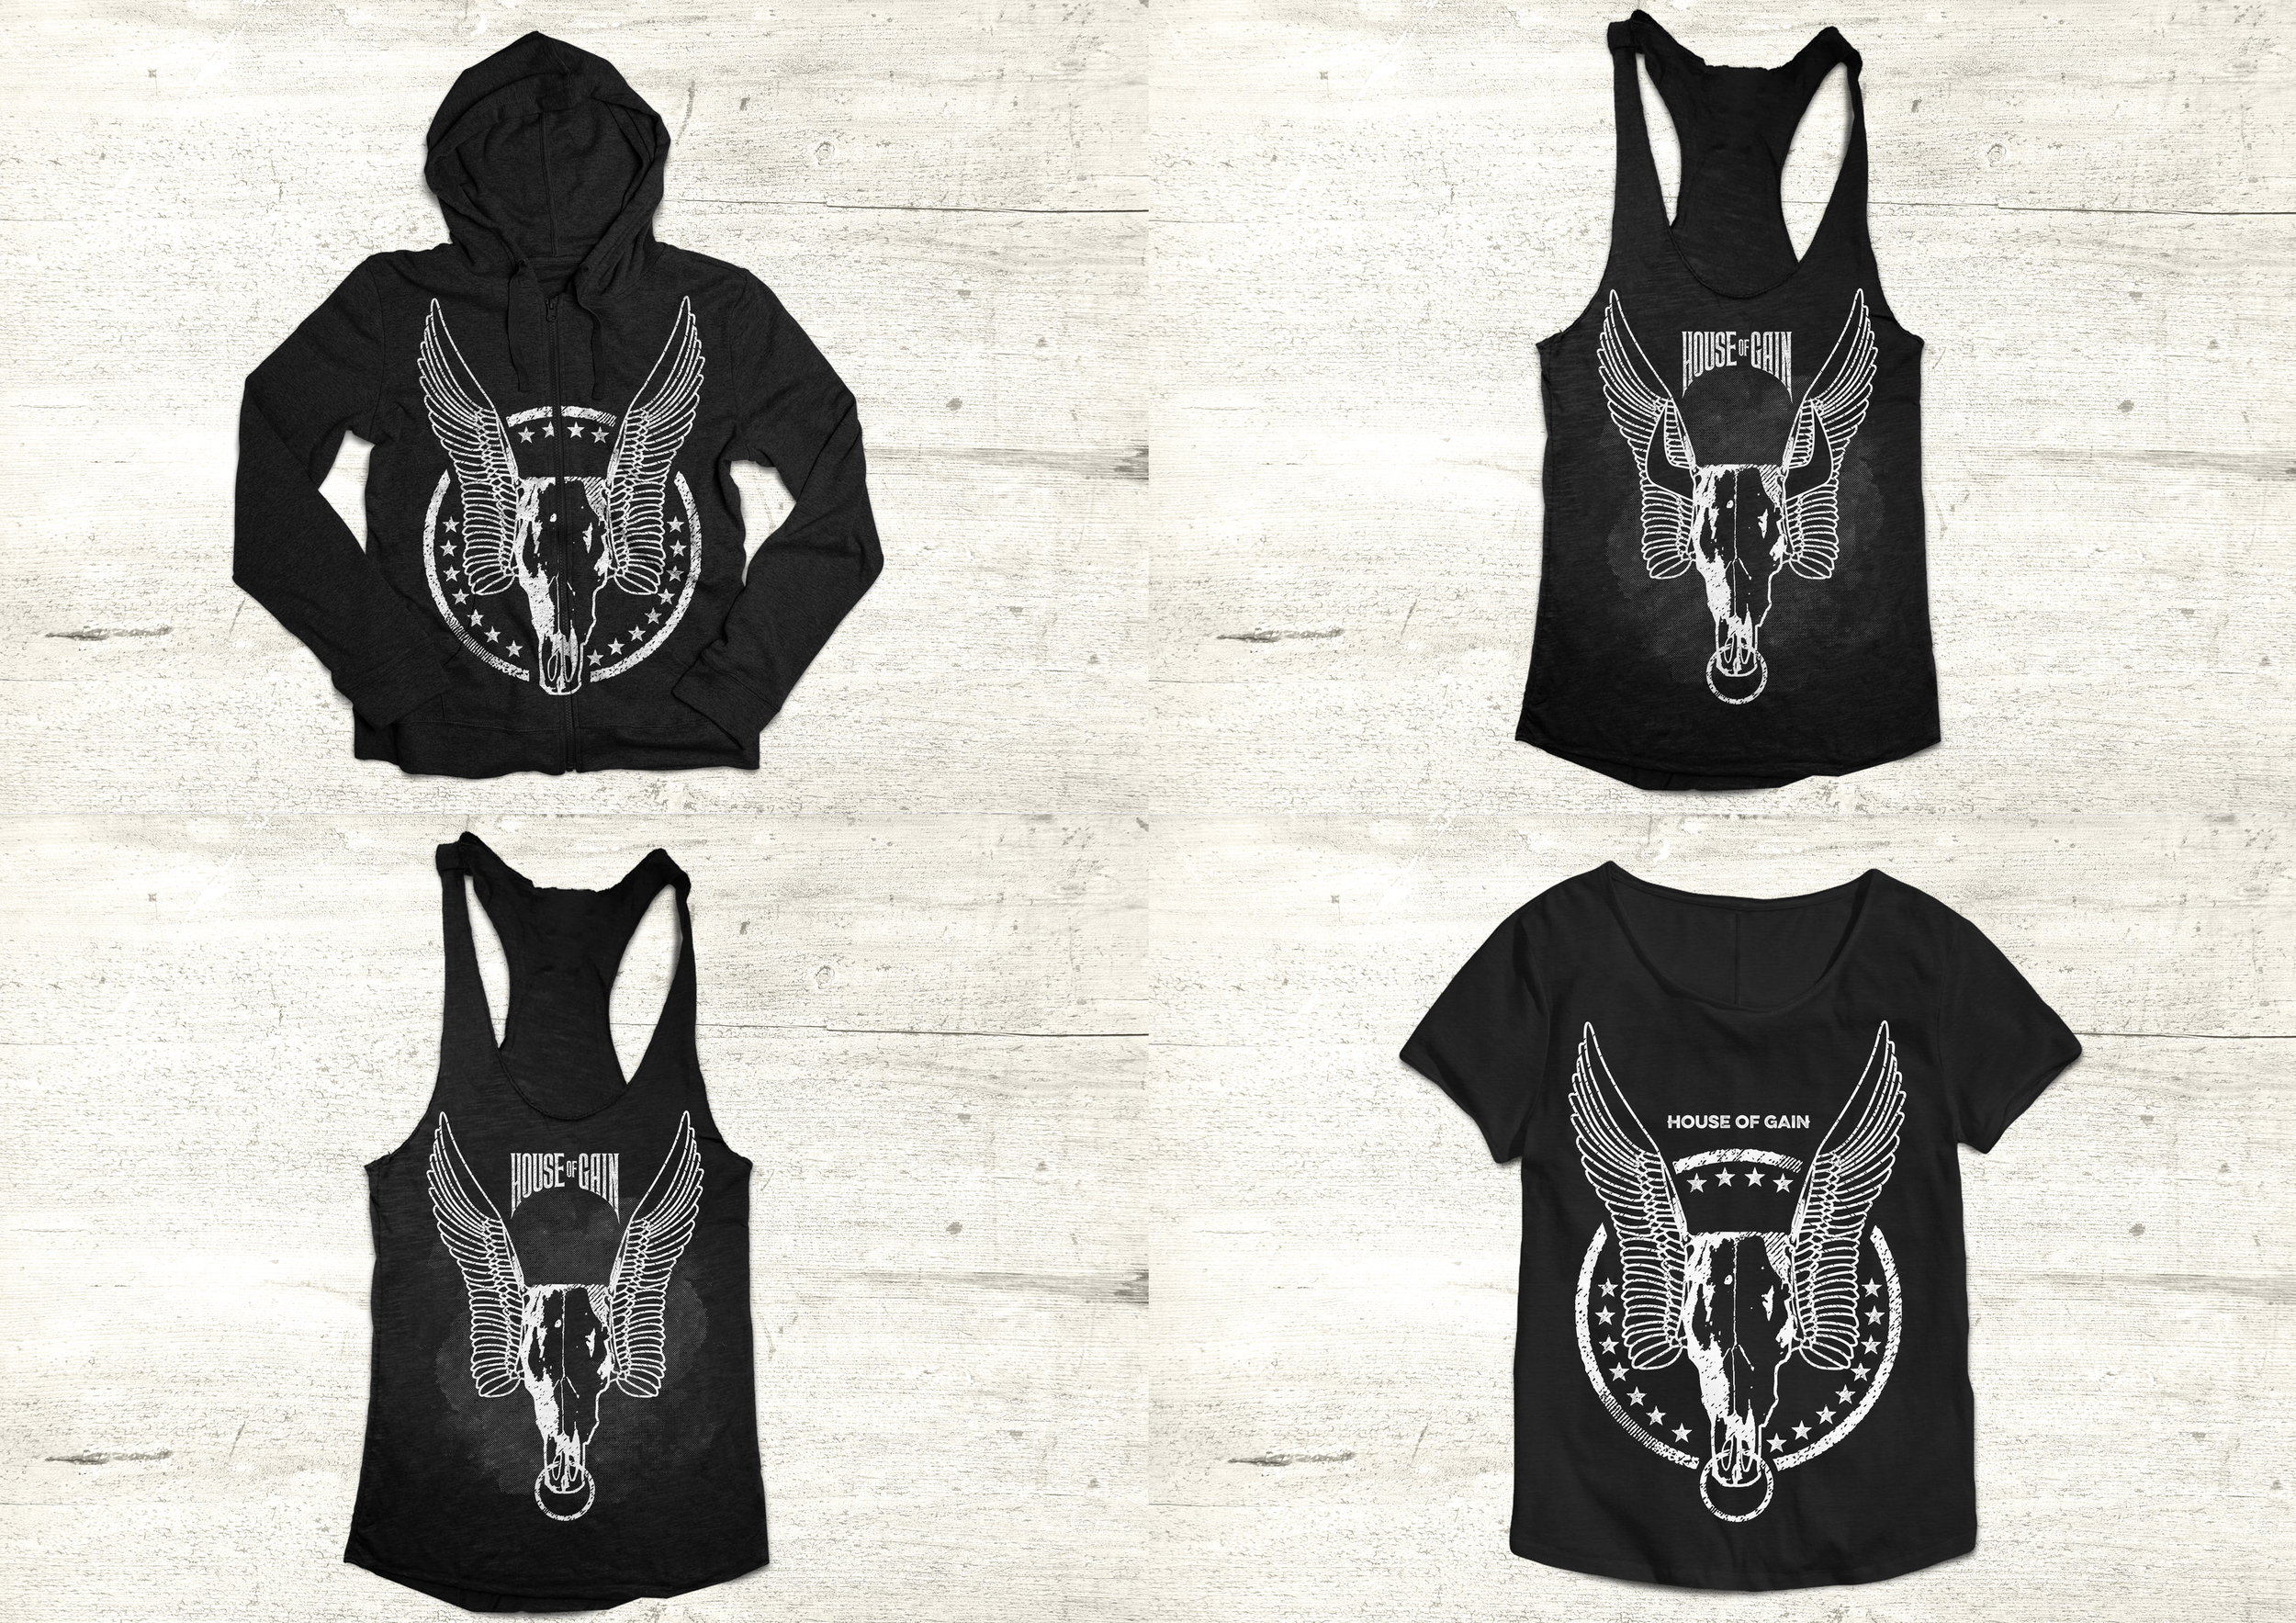 HOG Clothing Mock Ups 2.jpg